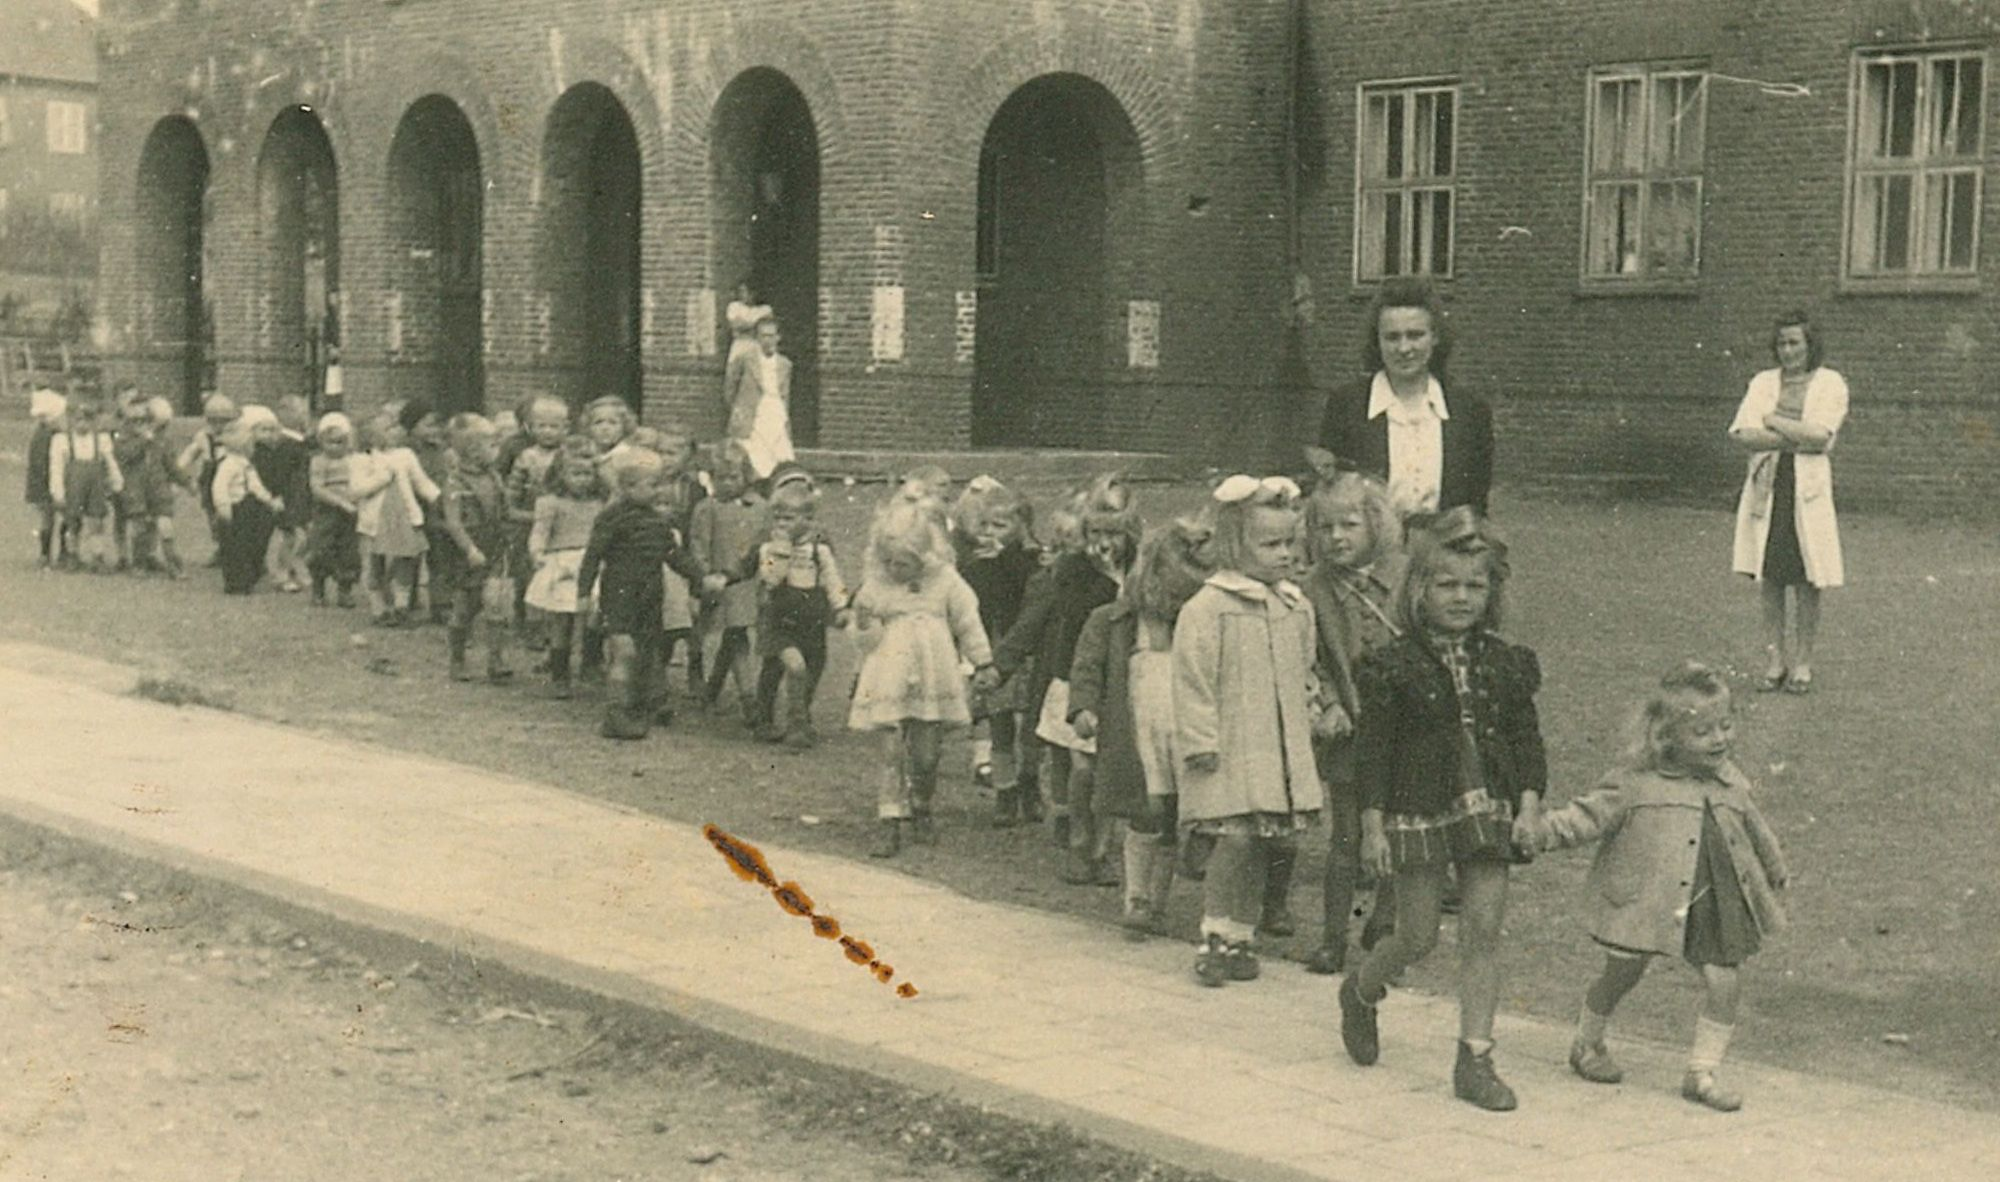 A crocodile of  children walking from left to right along a path in front of the stark Flensburg DP buildings